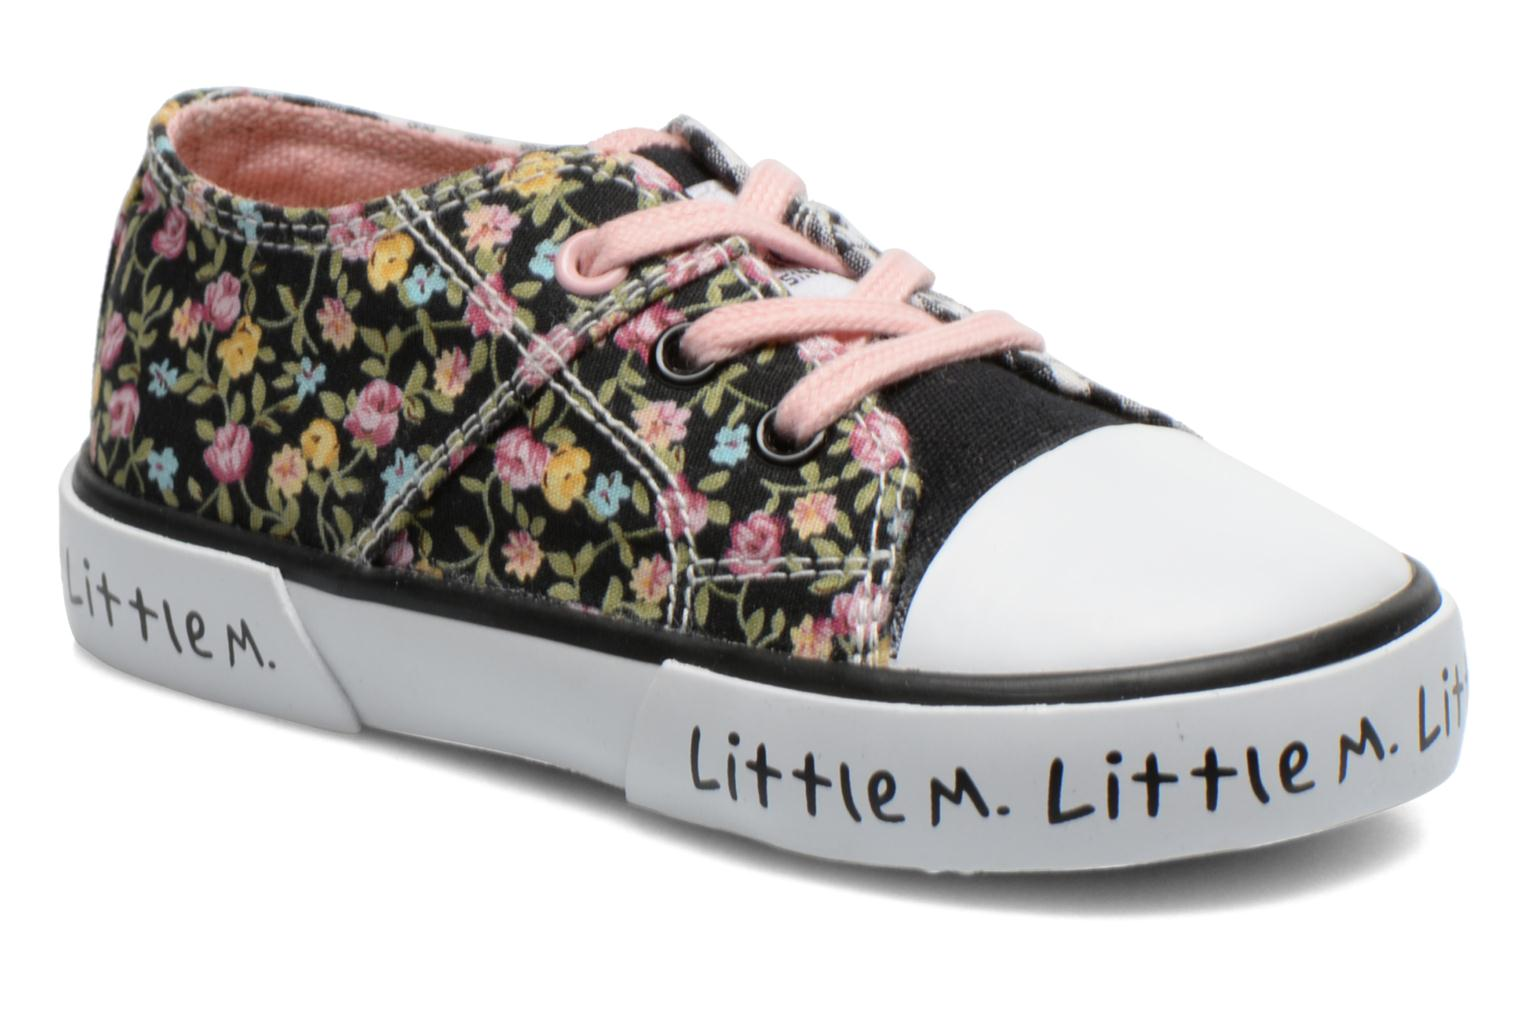 LITTLE TENNIS LIBERTY NOIR